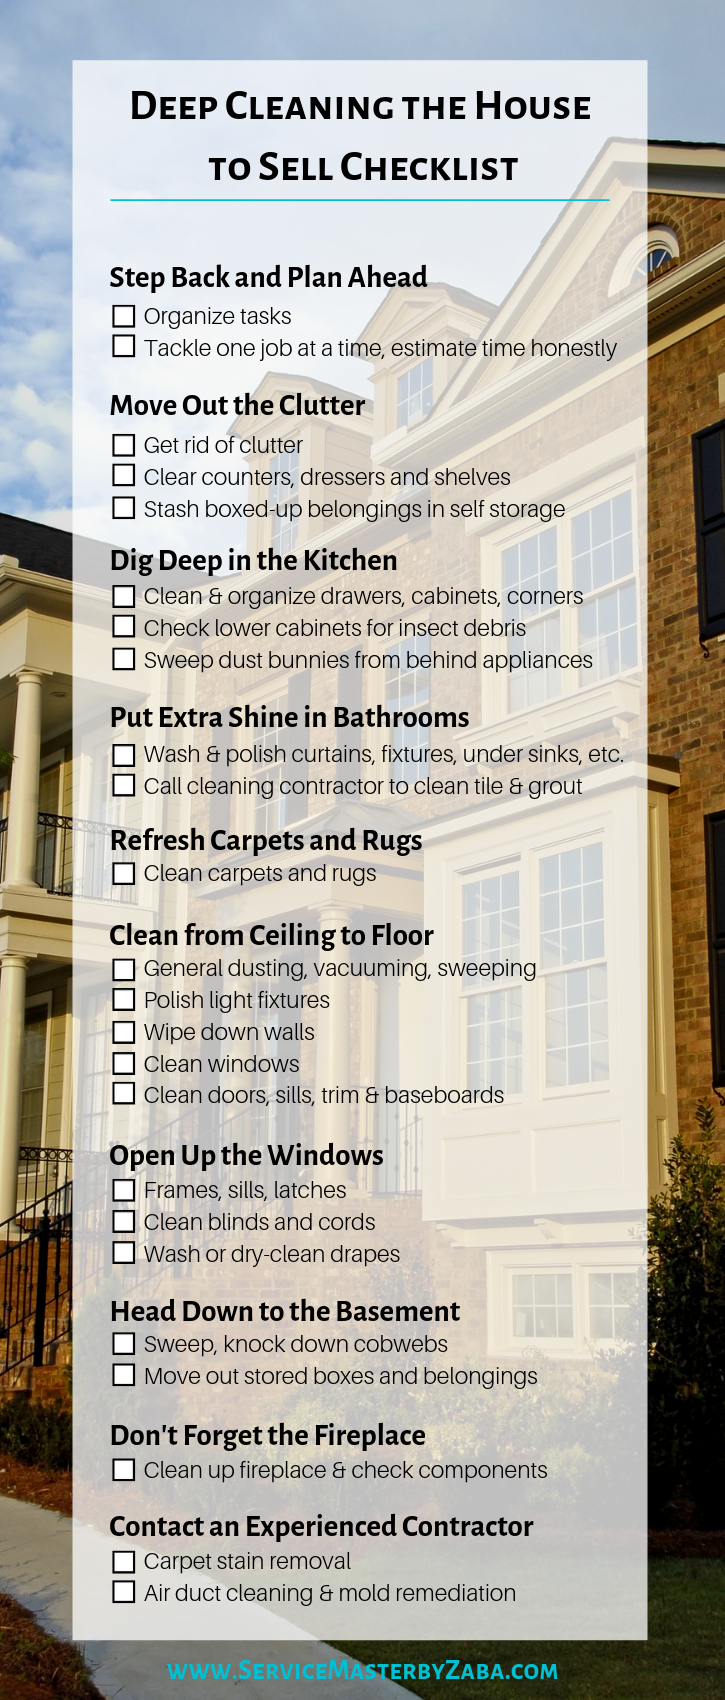 deep cleaning house to sell checklist